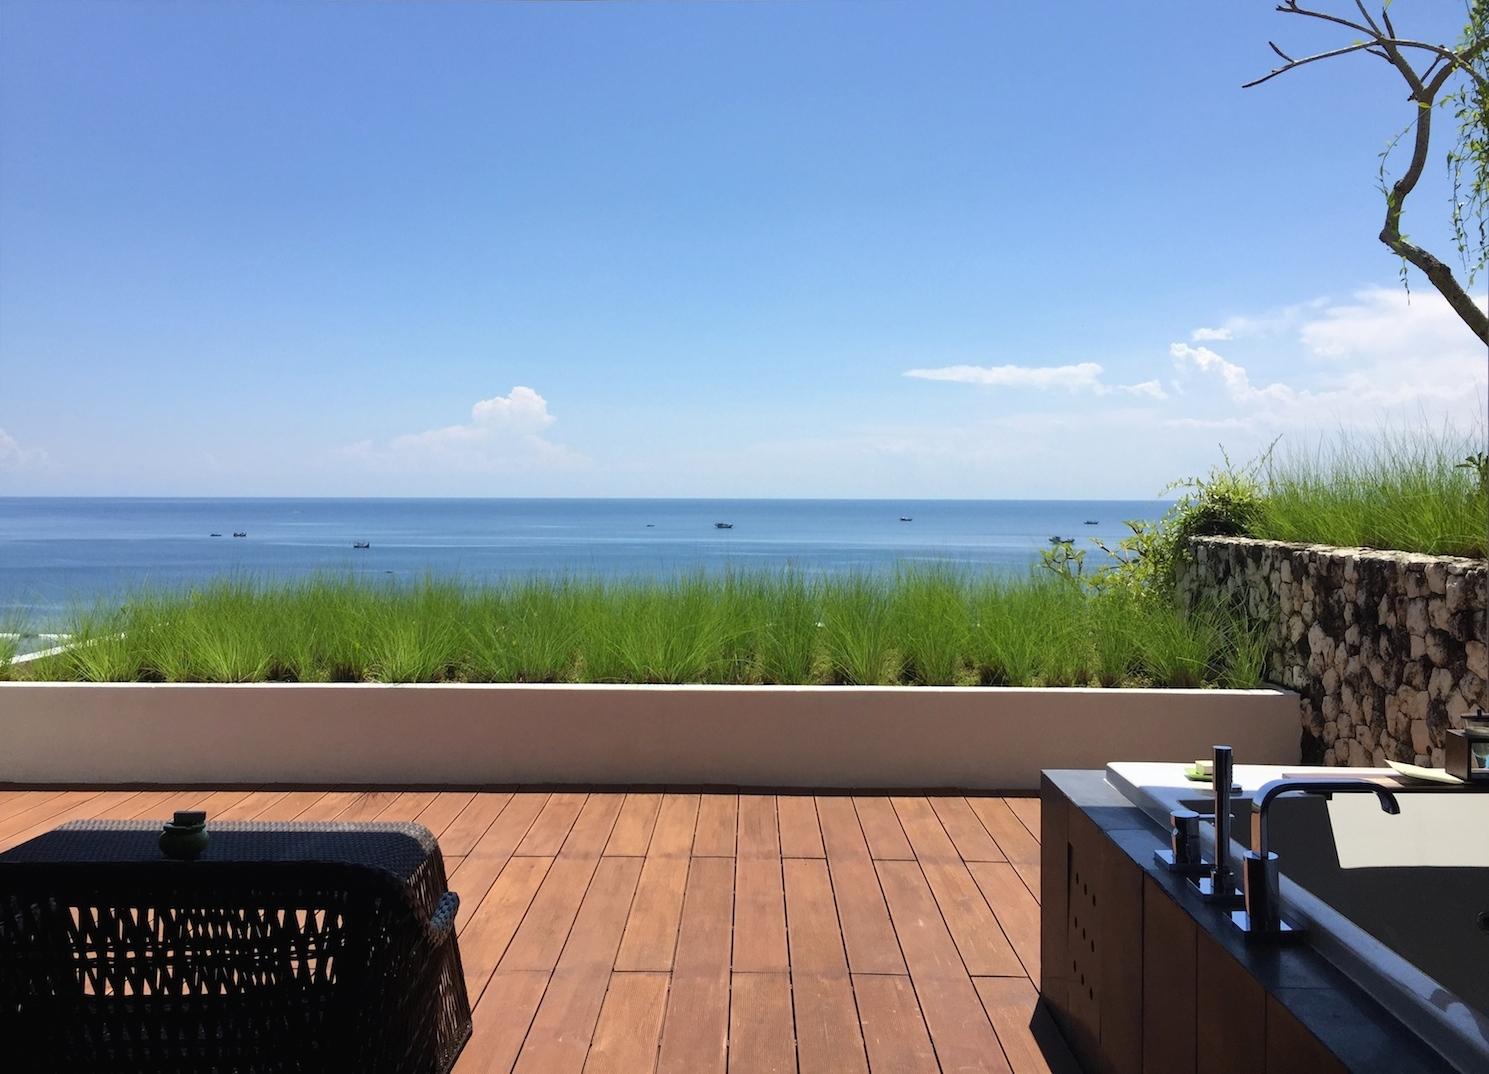 The Anantara Uluwatu Suite View